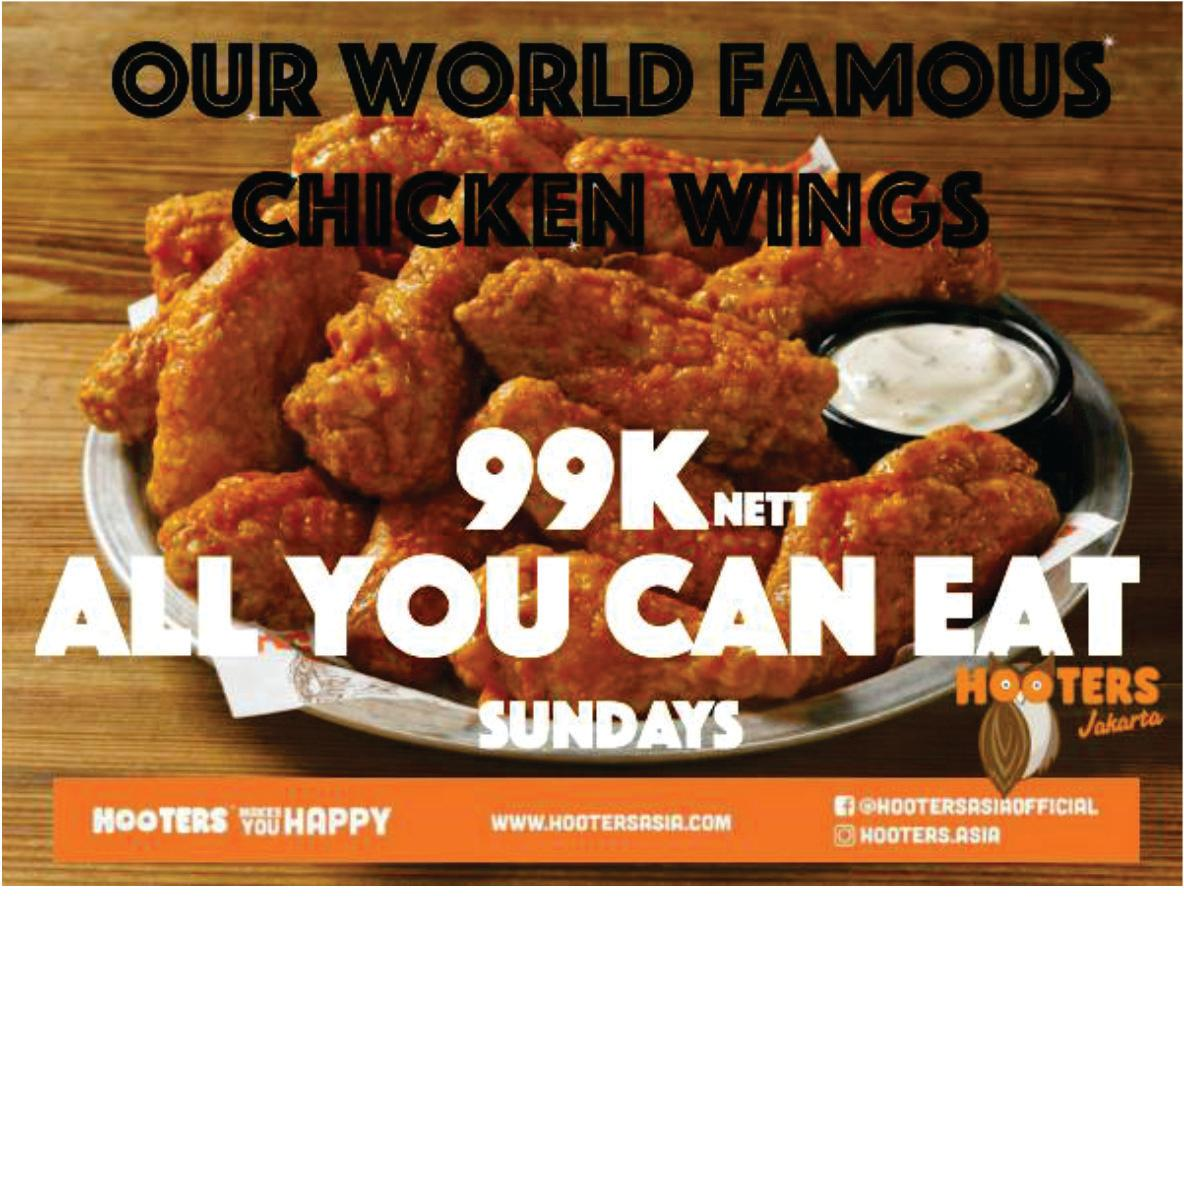 All You Can Eat Wings - Only 99k | TRAVLR Indonesia